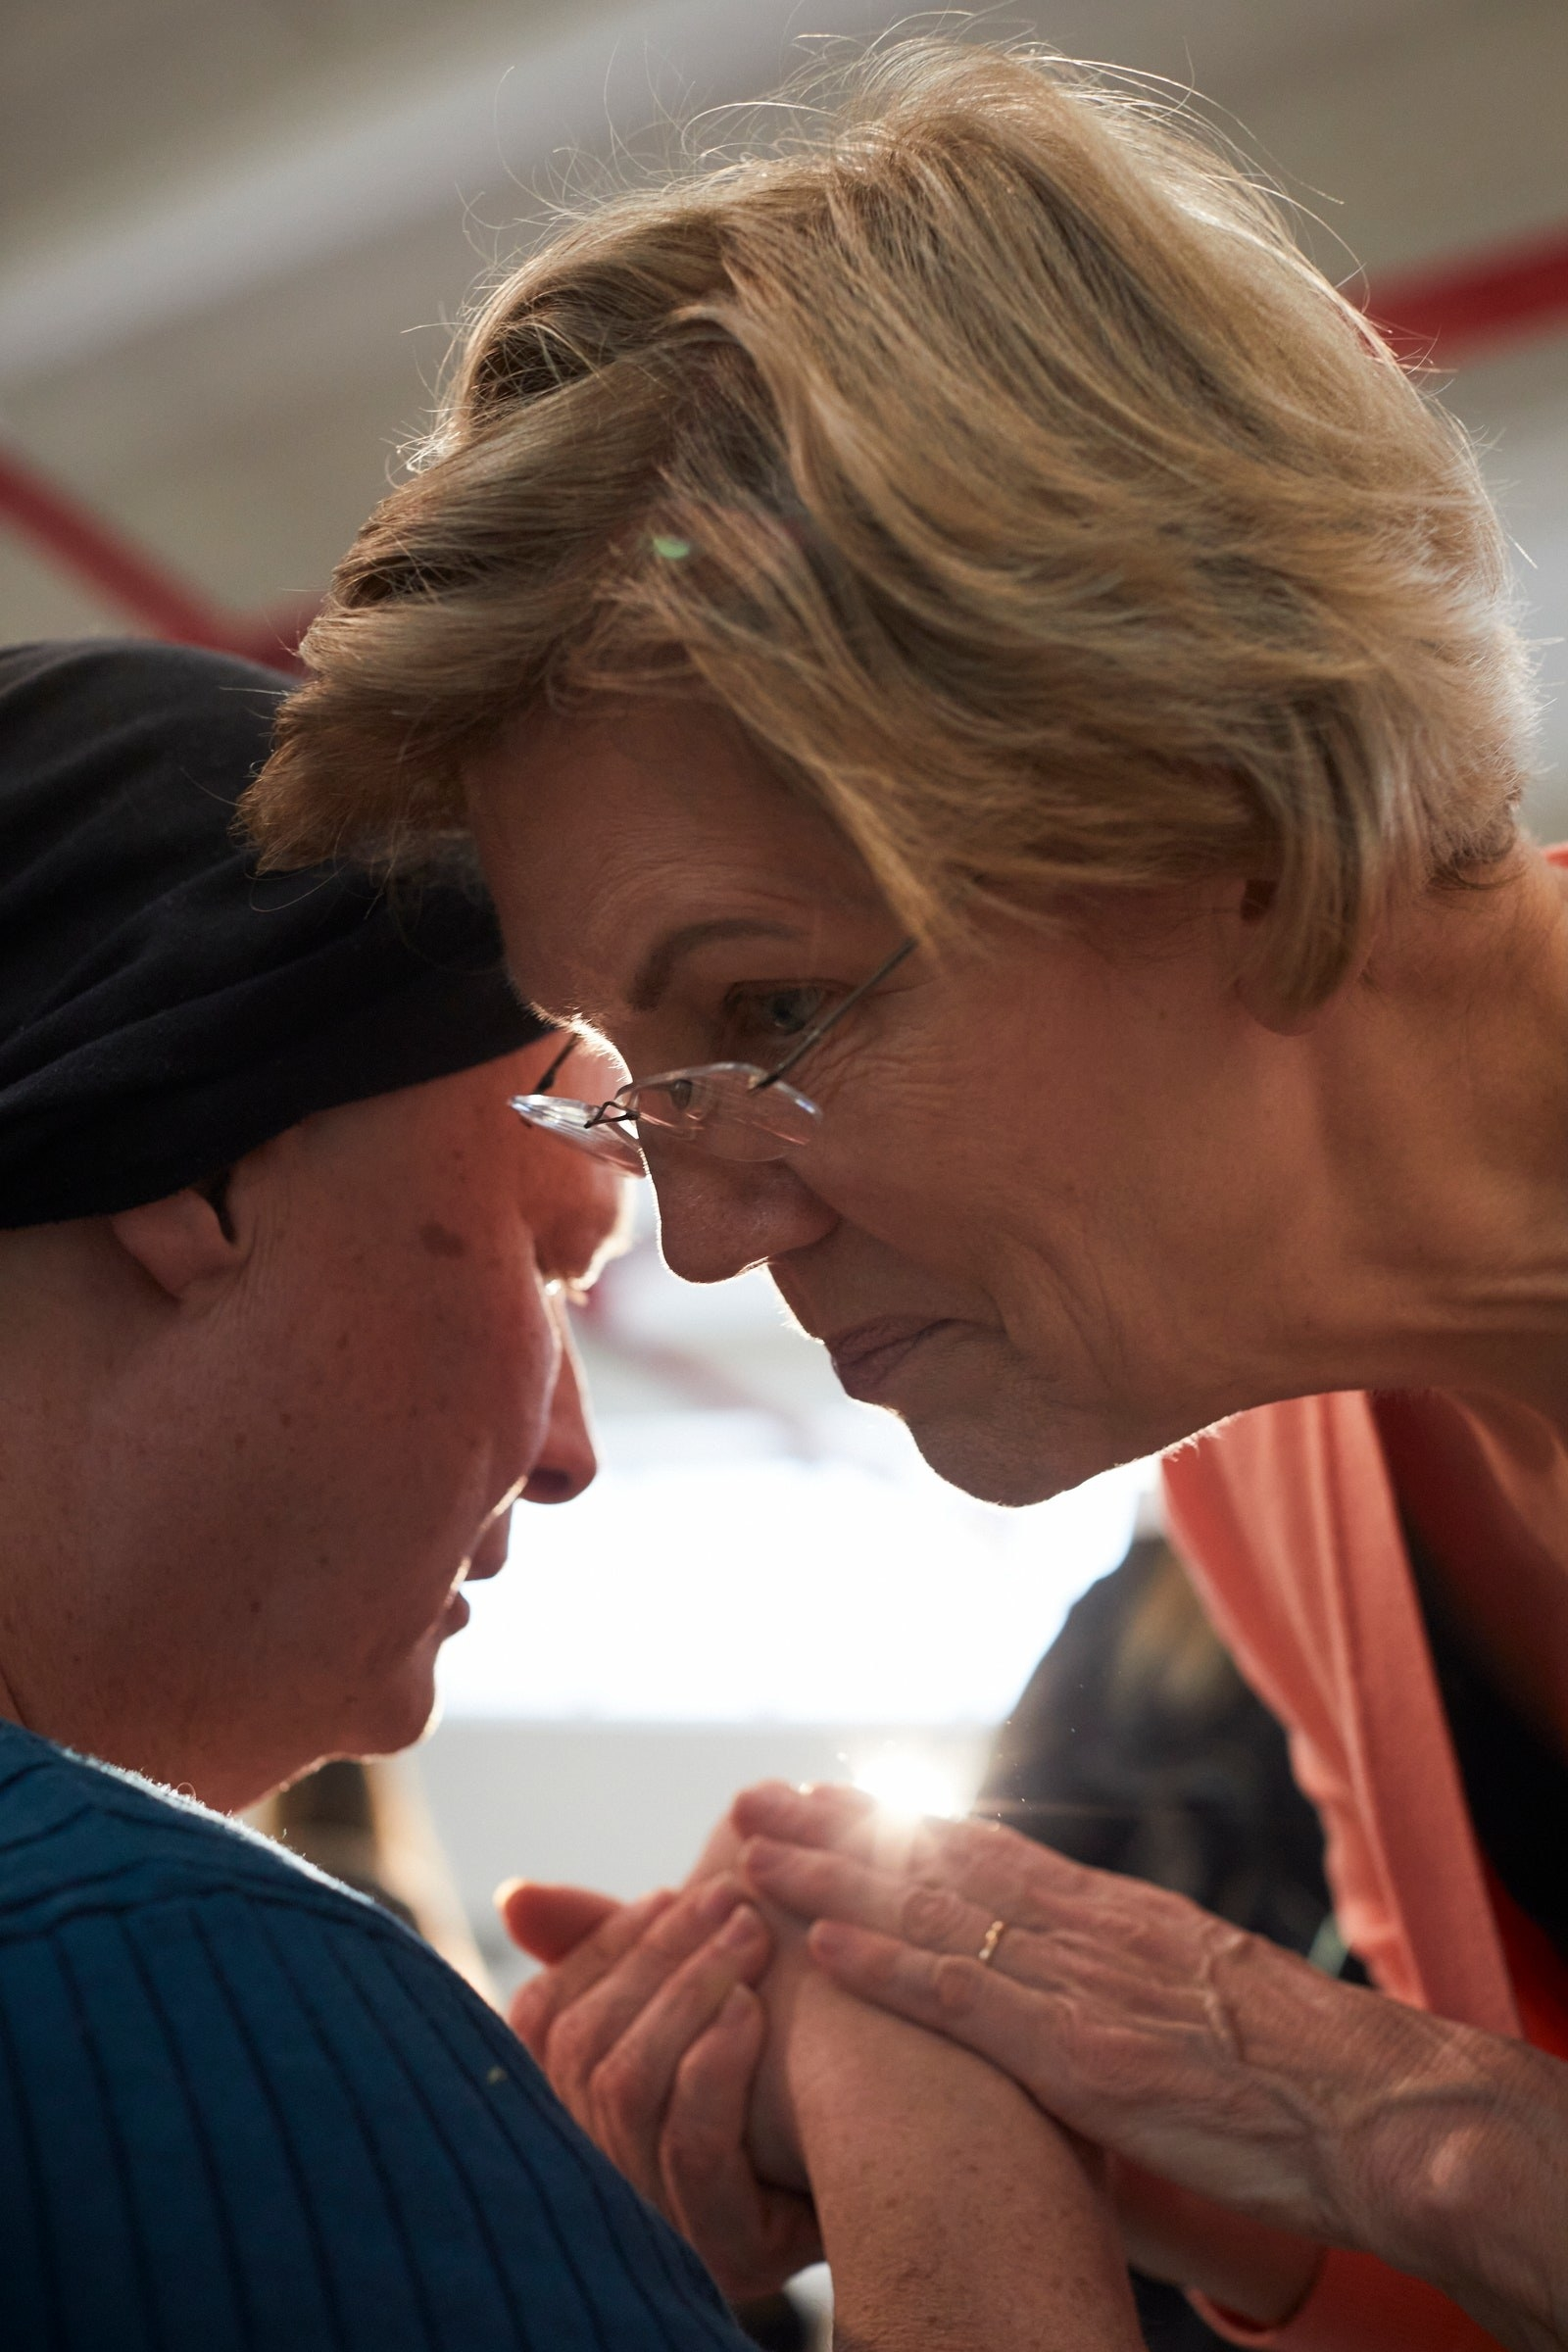 Former presidential candidate Elizabeth Warren leaning over to speak to someone, facing slightly away from the camera